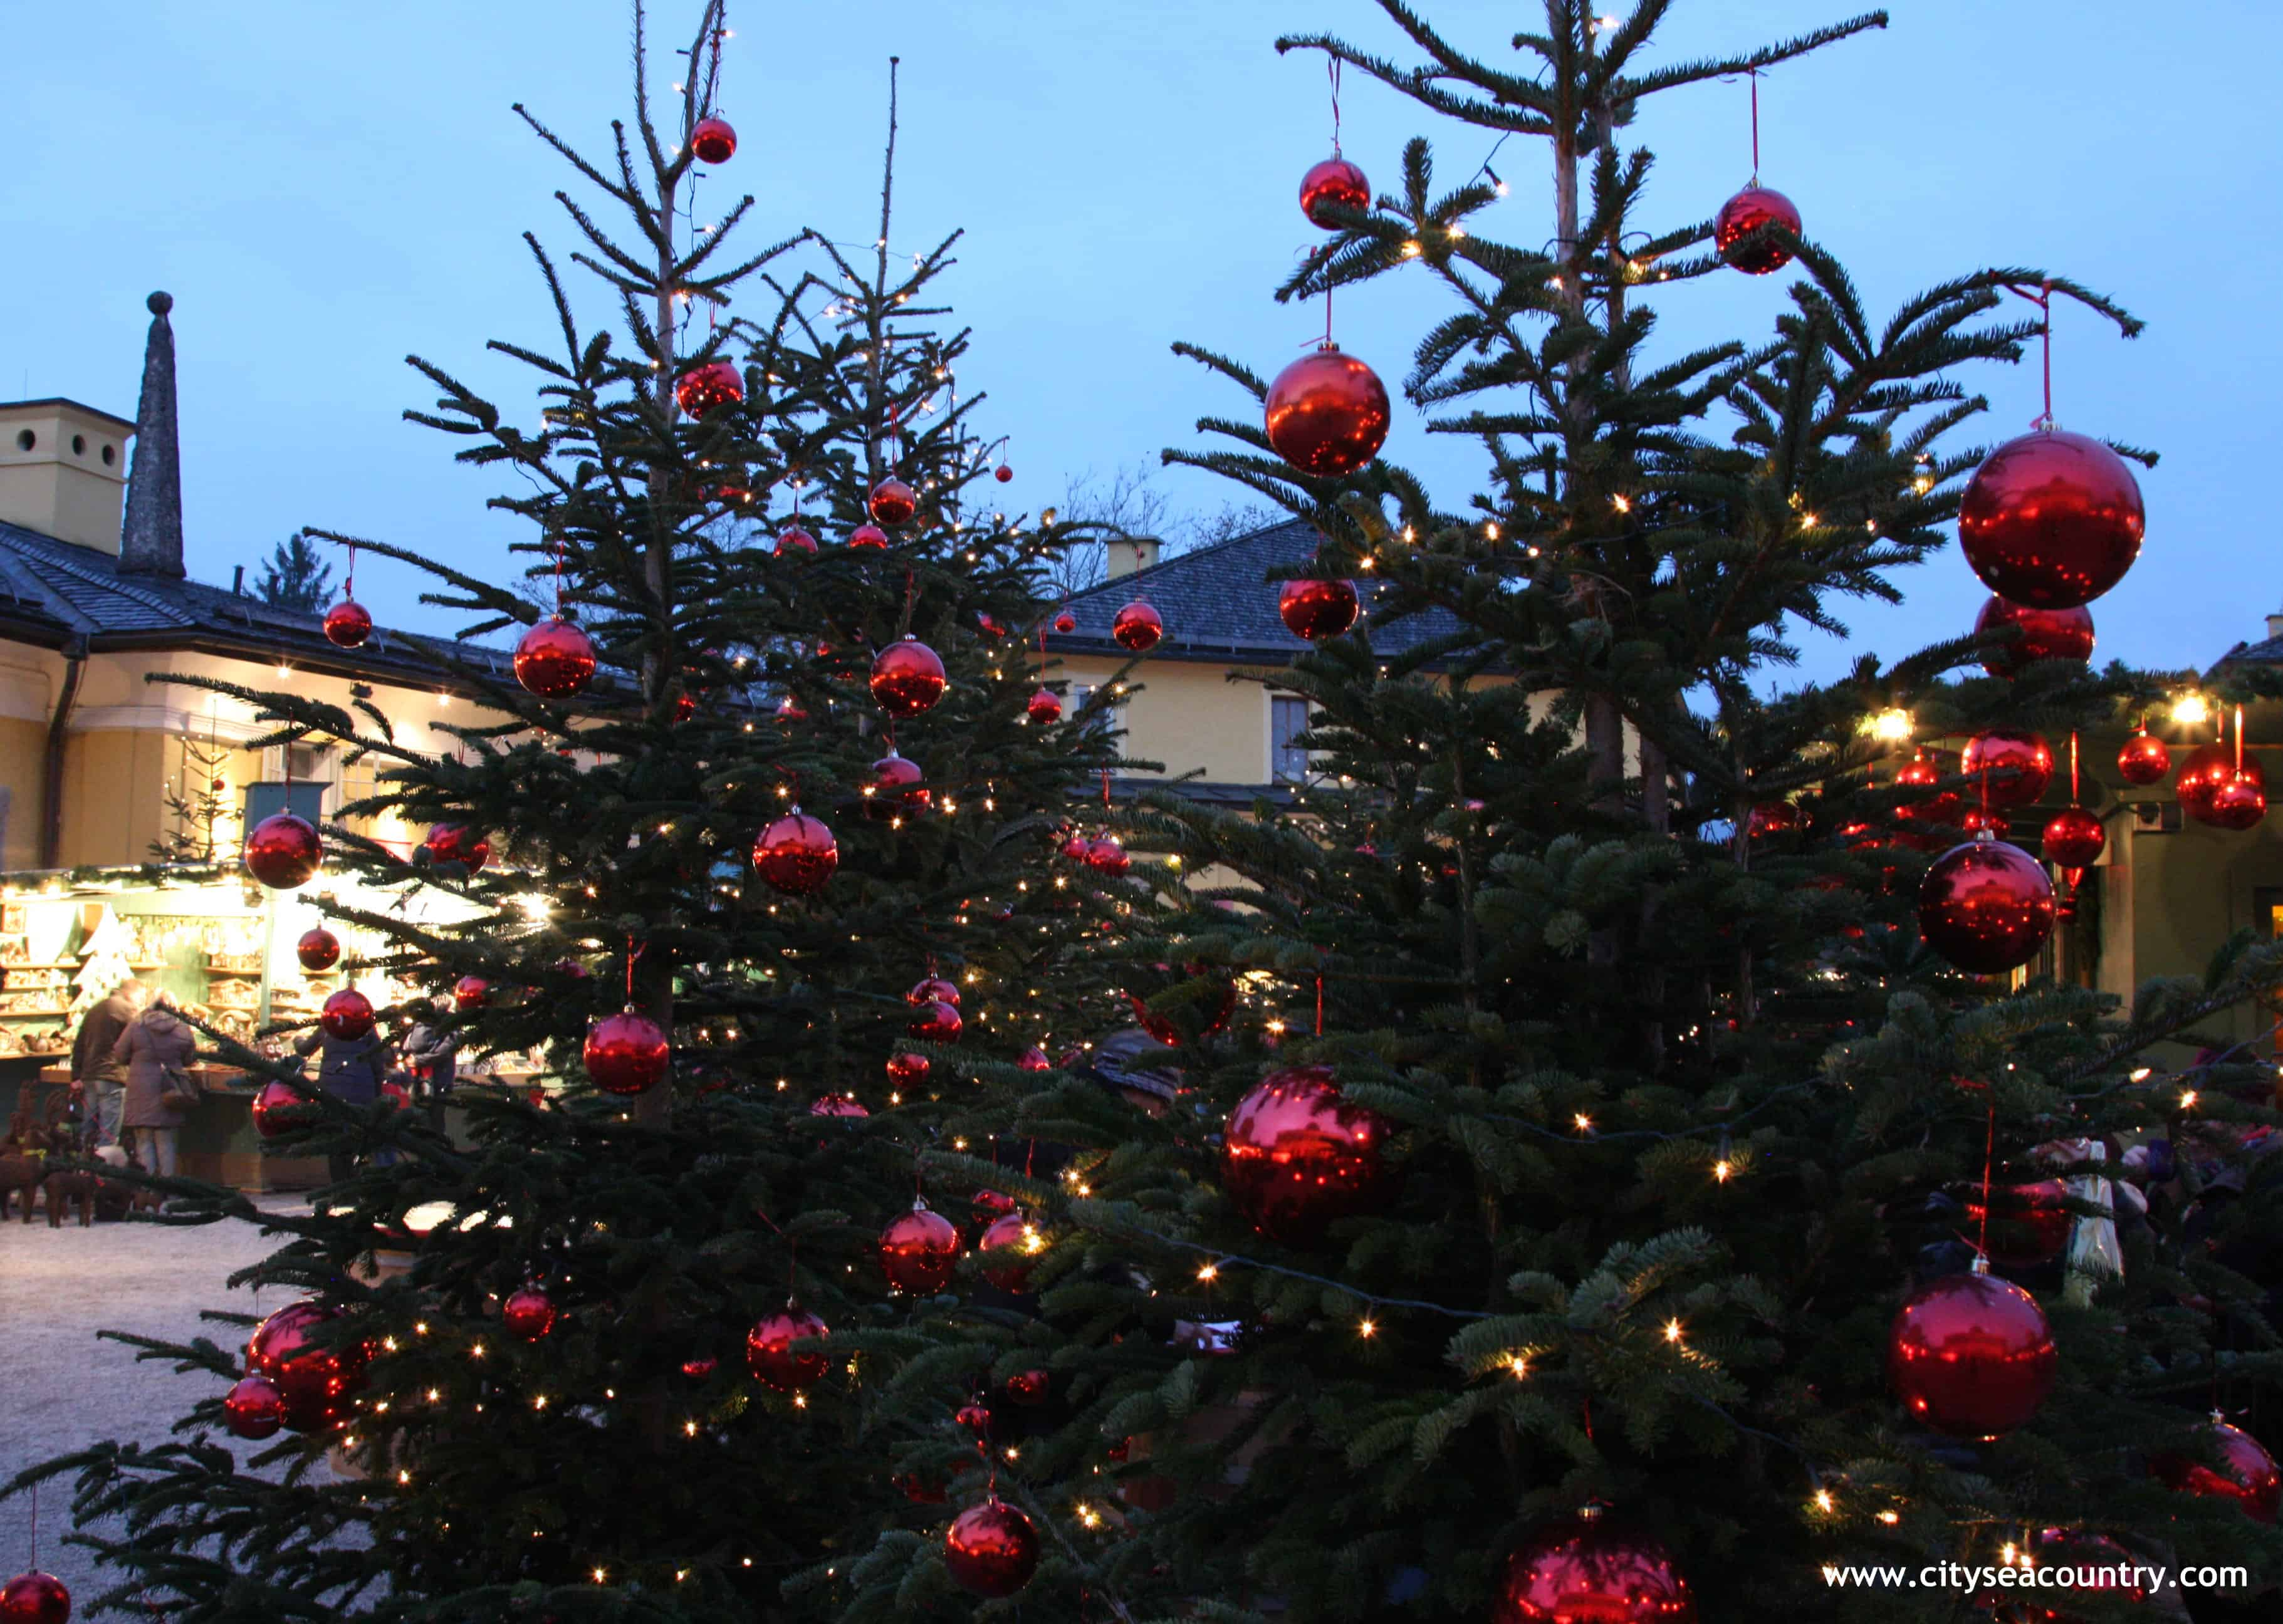 More than 200 Christmas Trees and 13 000 red Christmas Baubles at the Hellbrunner Adventzauber...